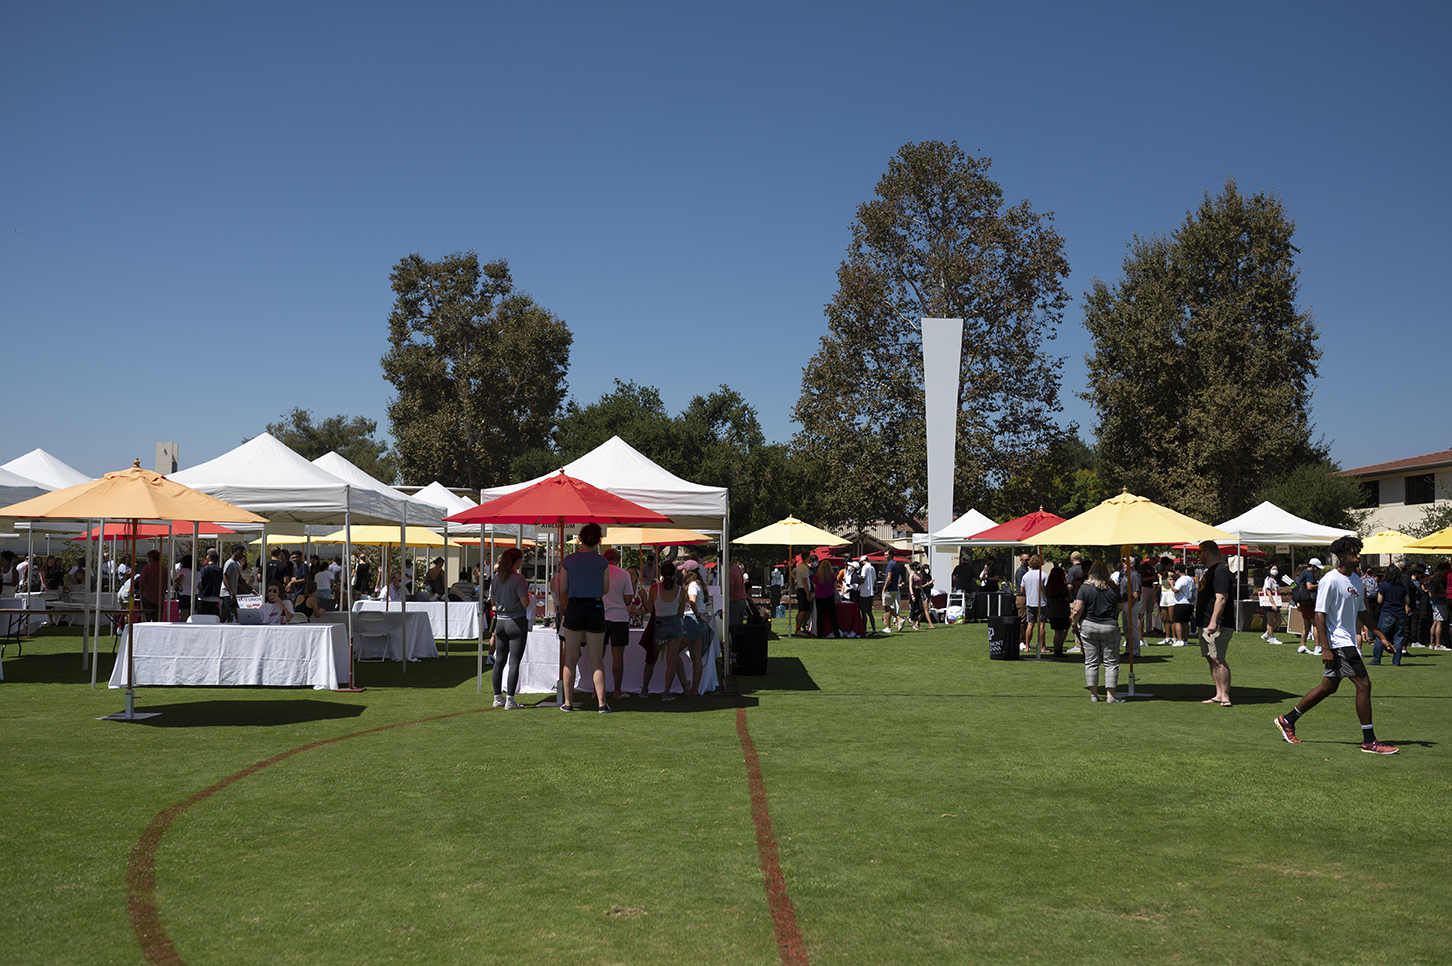 Information booths line Parents Field for CMC's Club and Institute Fair.